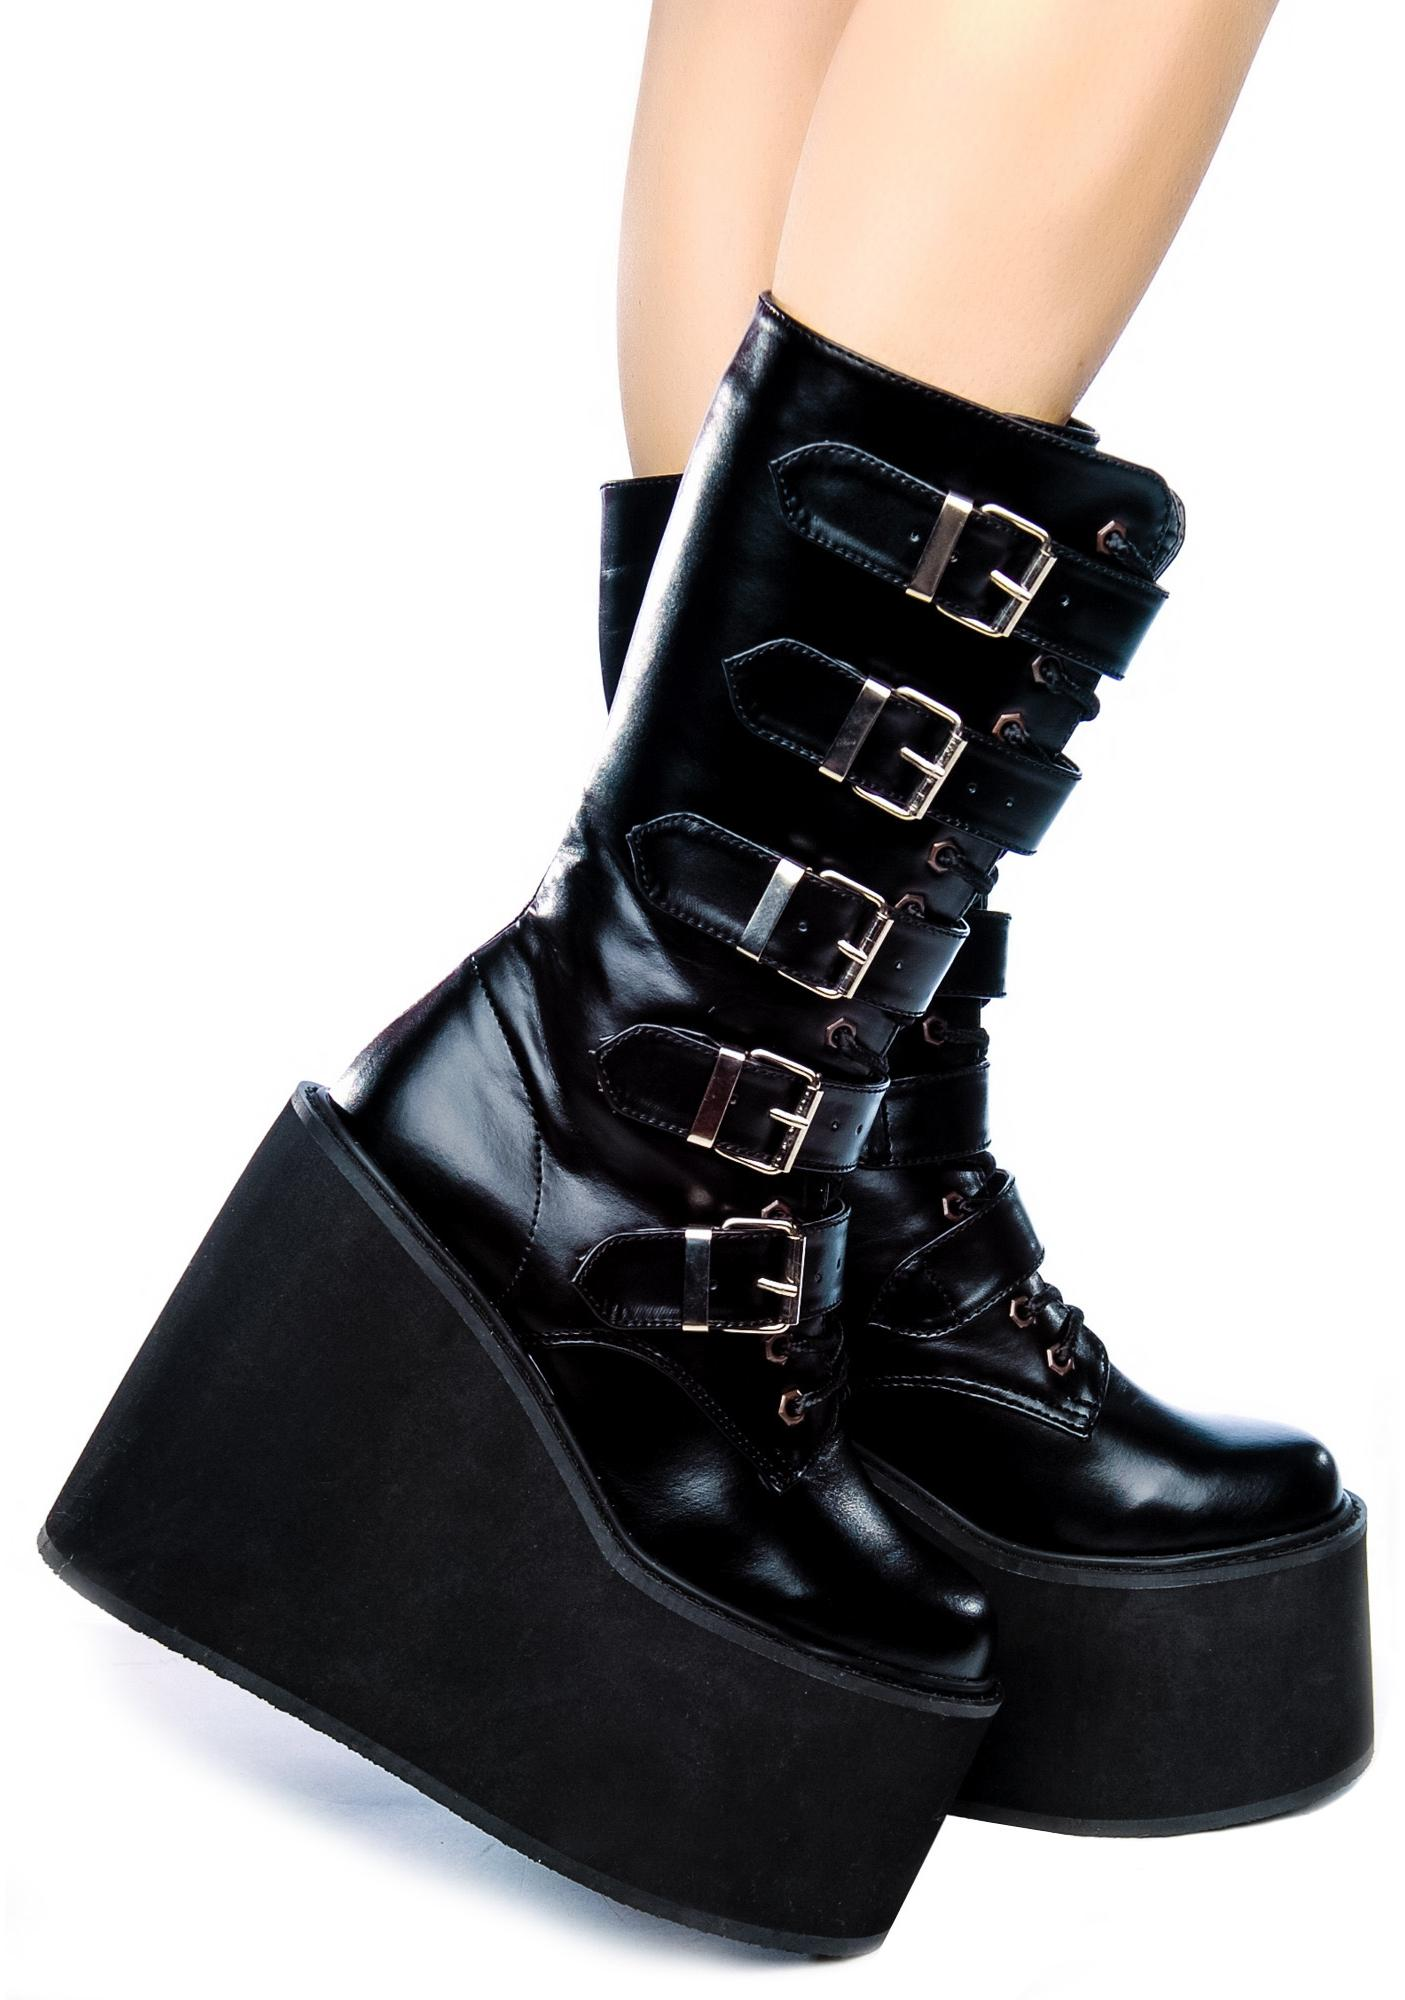 "One thought on ""How To Wear Heeled Platform Boots"""